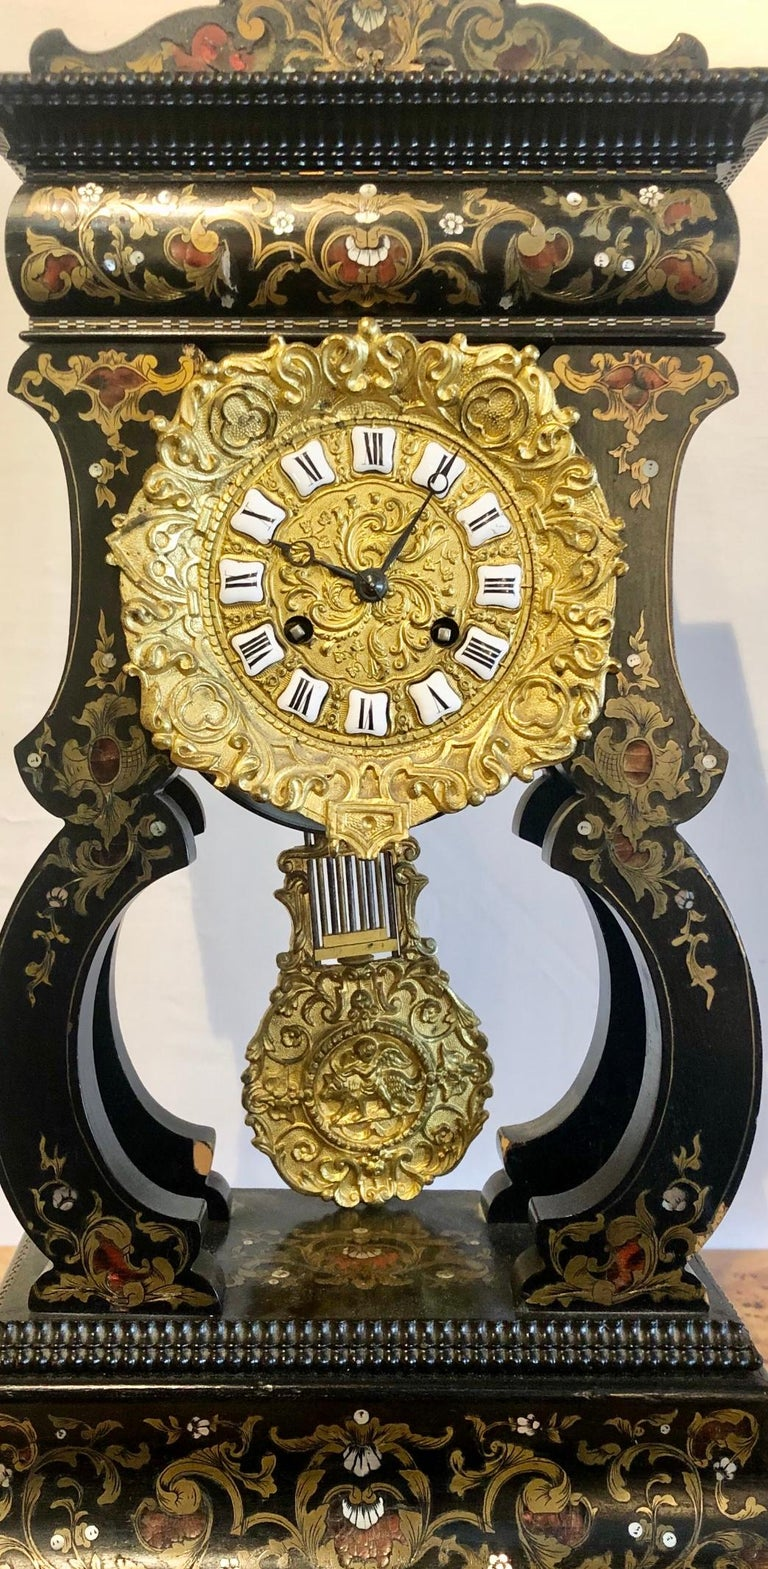 19th century mantle clock Louis Philippe ebony and boule inlaid. The fine and very decorative mantle clock has ornate bronze work with a bronze pendulum. Not working at this time. ZZL.